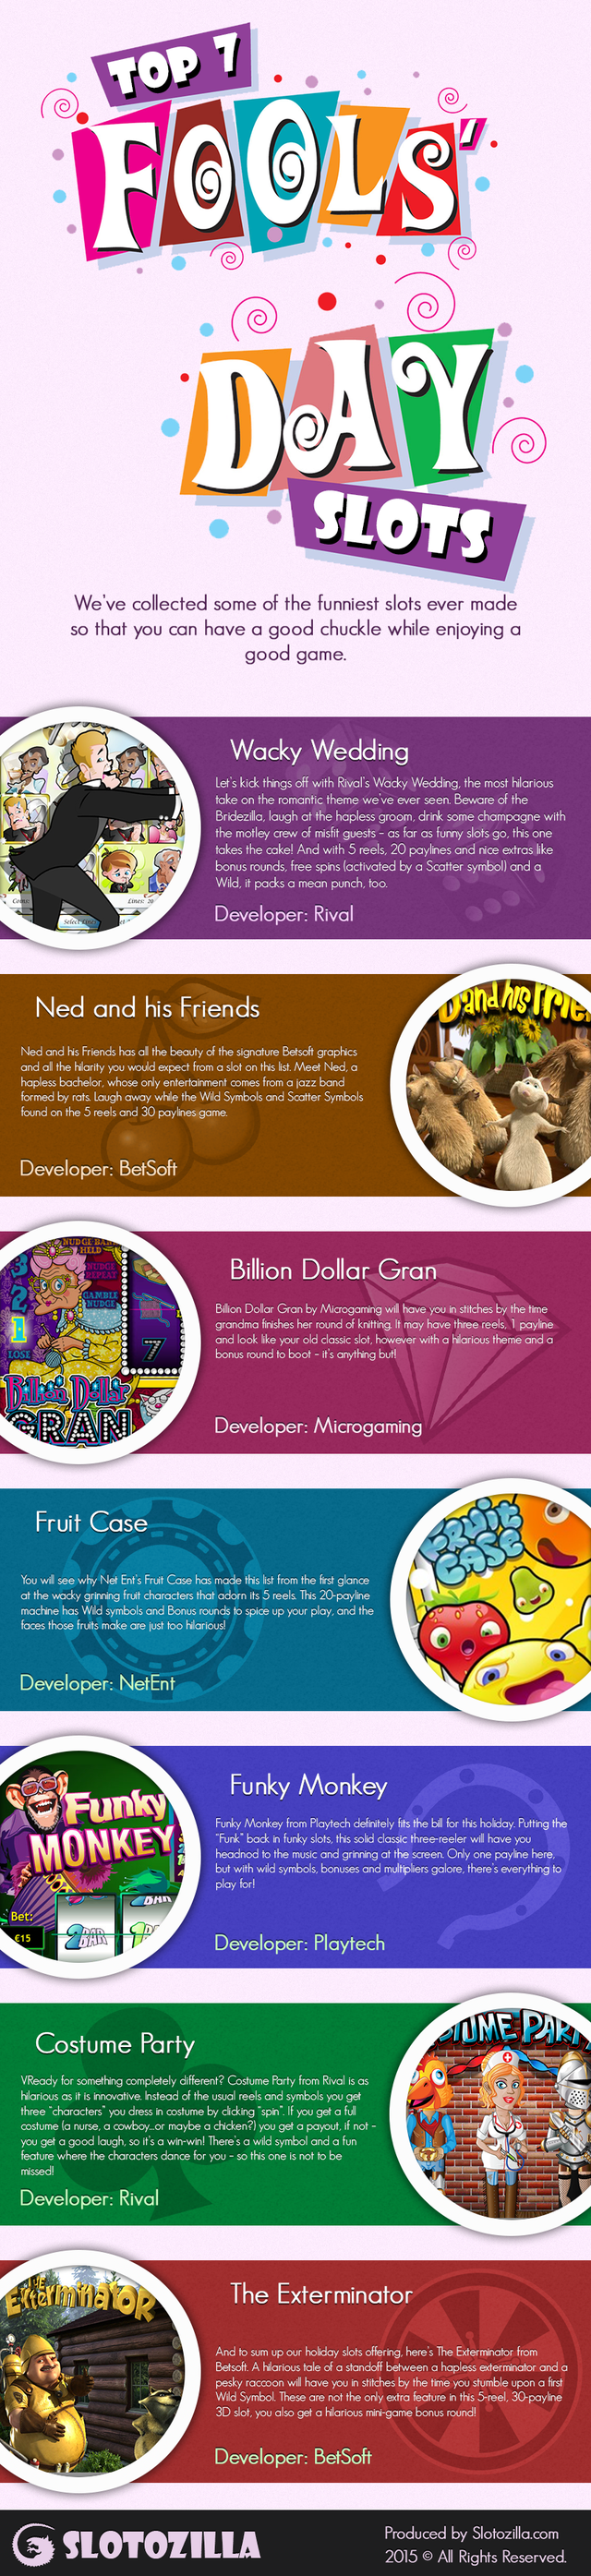 Lucky 7 april fools day slots infographic slotozilla